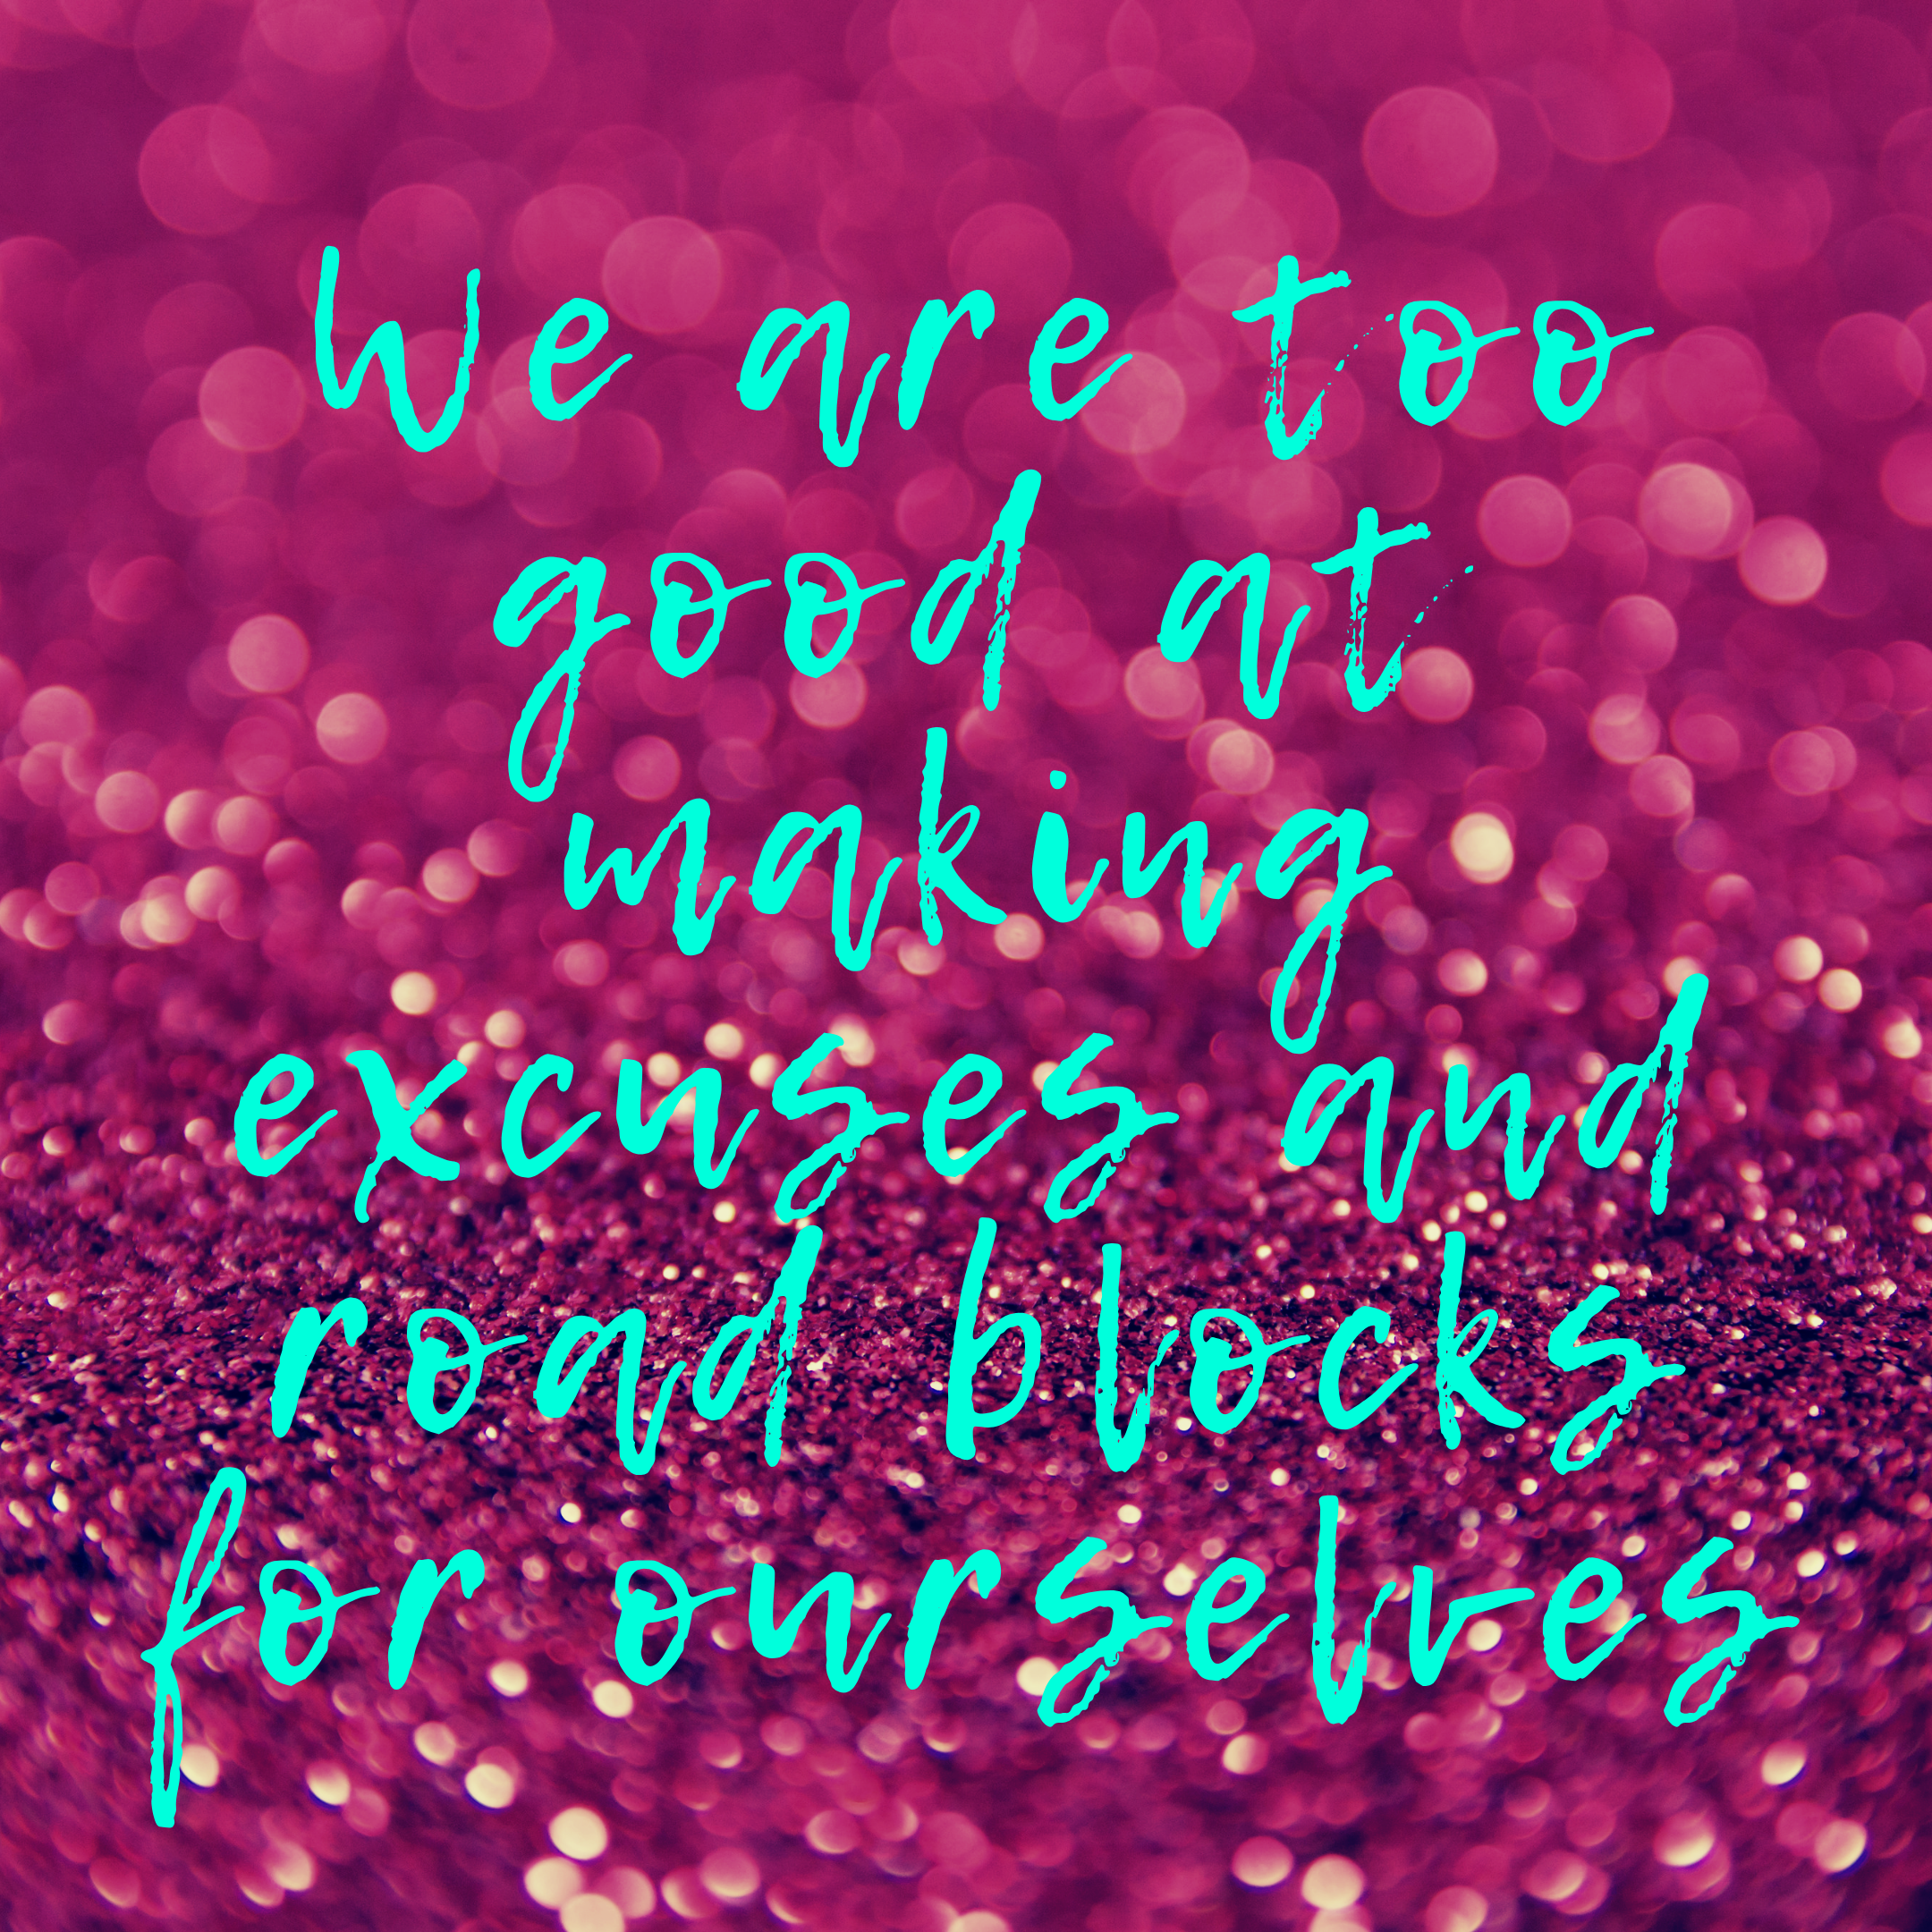 We are too good at making excuses and creating roadblocks for ourselves.